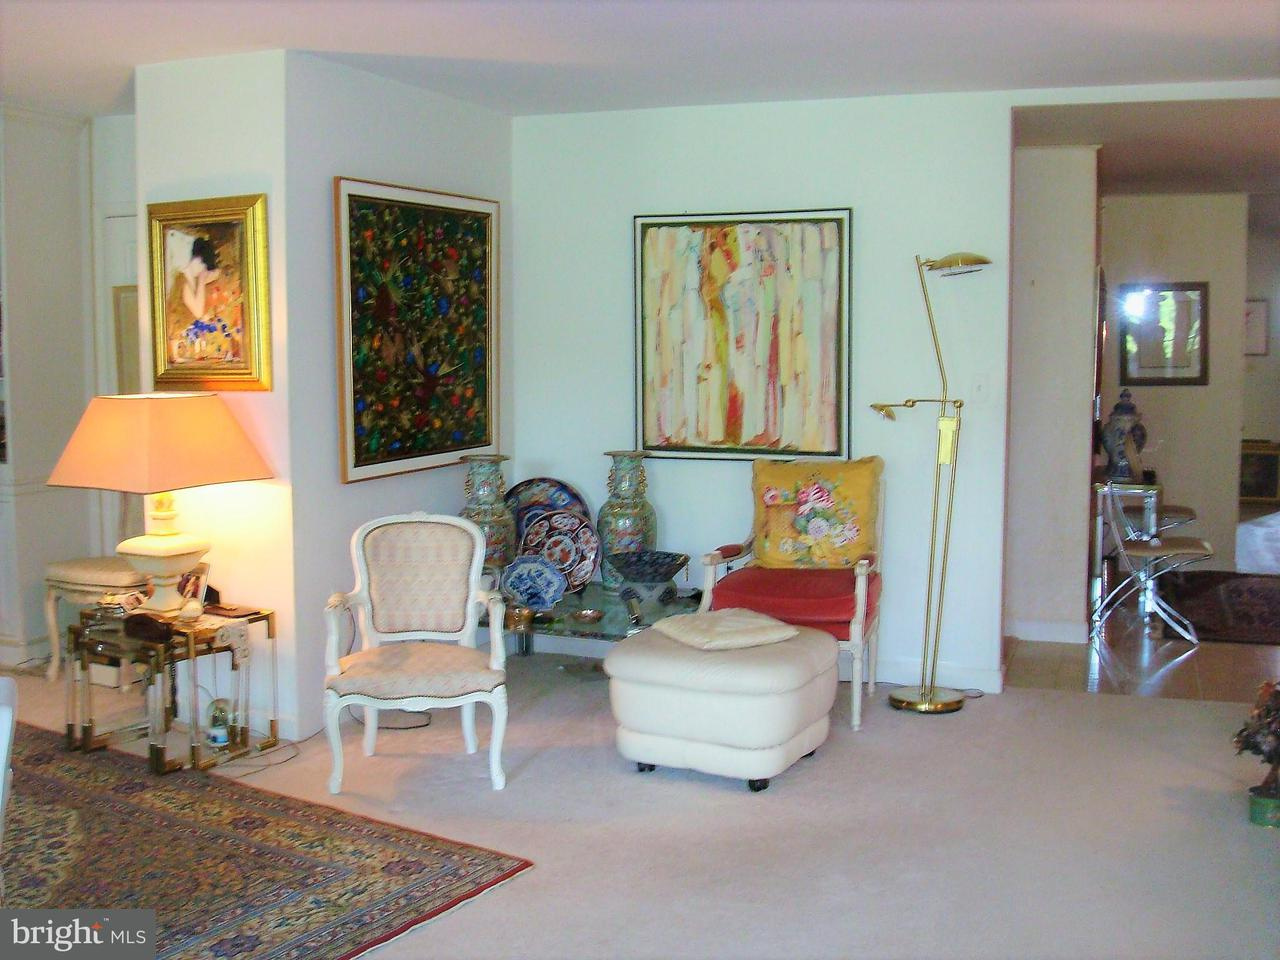 Additional photo for property listing at 4200 Massachusetts Ave NW #306  Washington, District Of Columbia 20016 United States